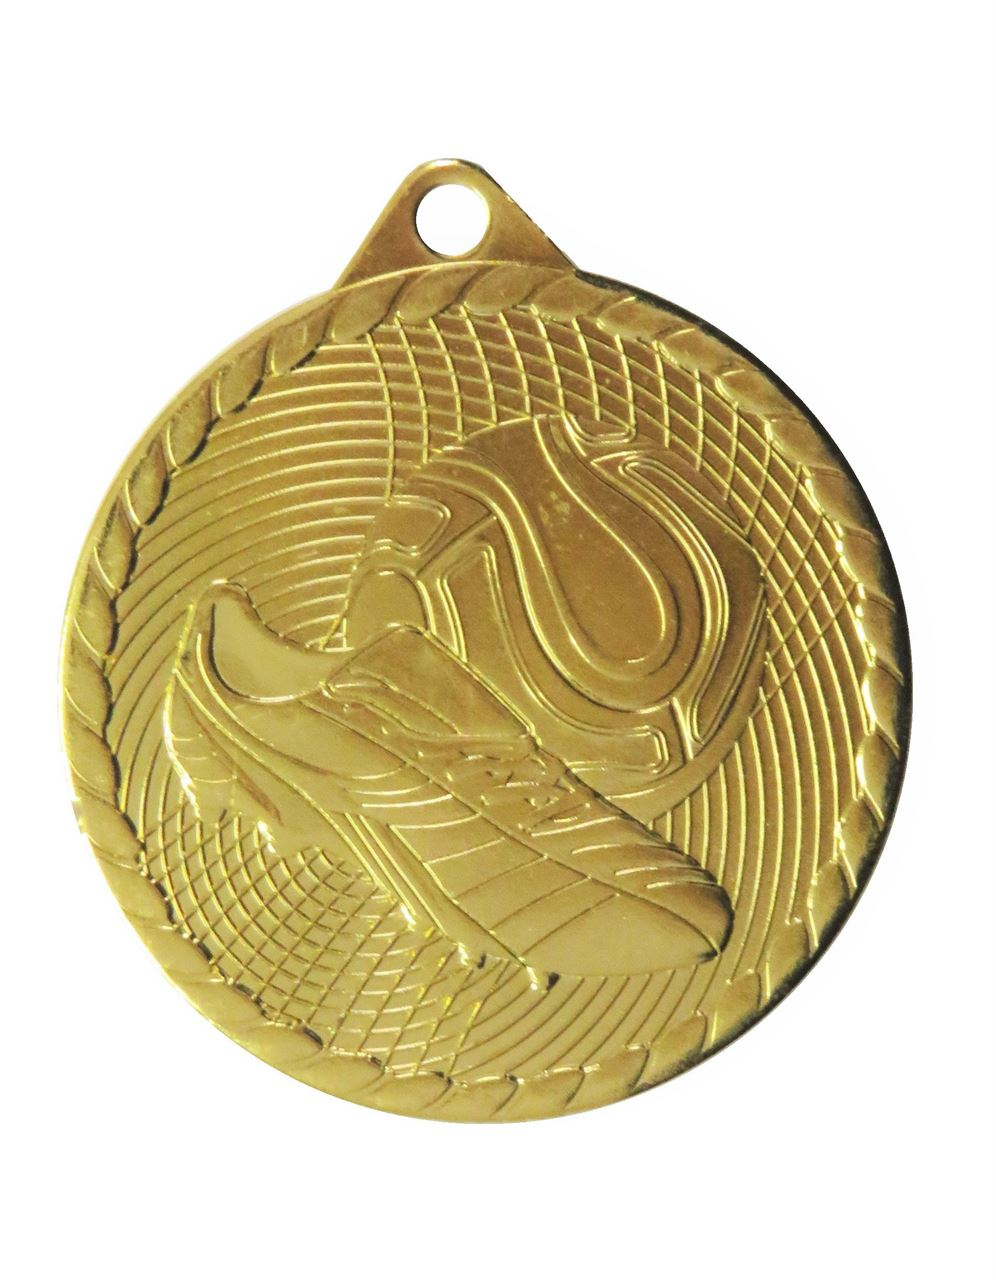 Gold Isoline Economy Football Medal (size: 50mm) - 63851